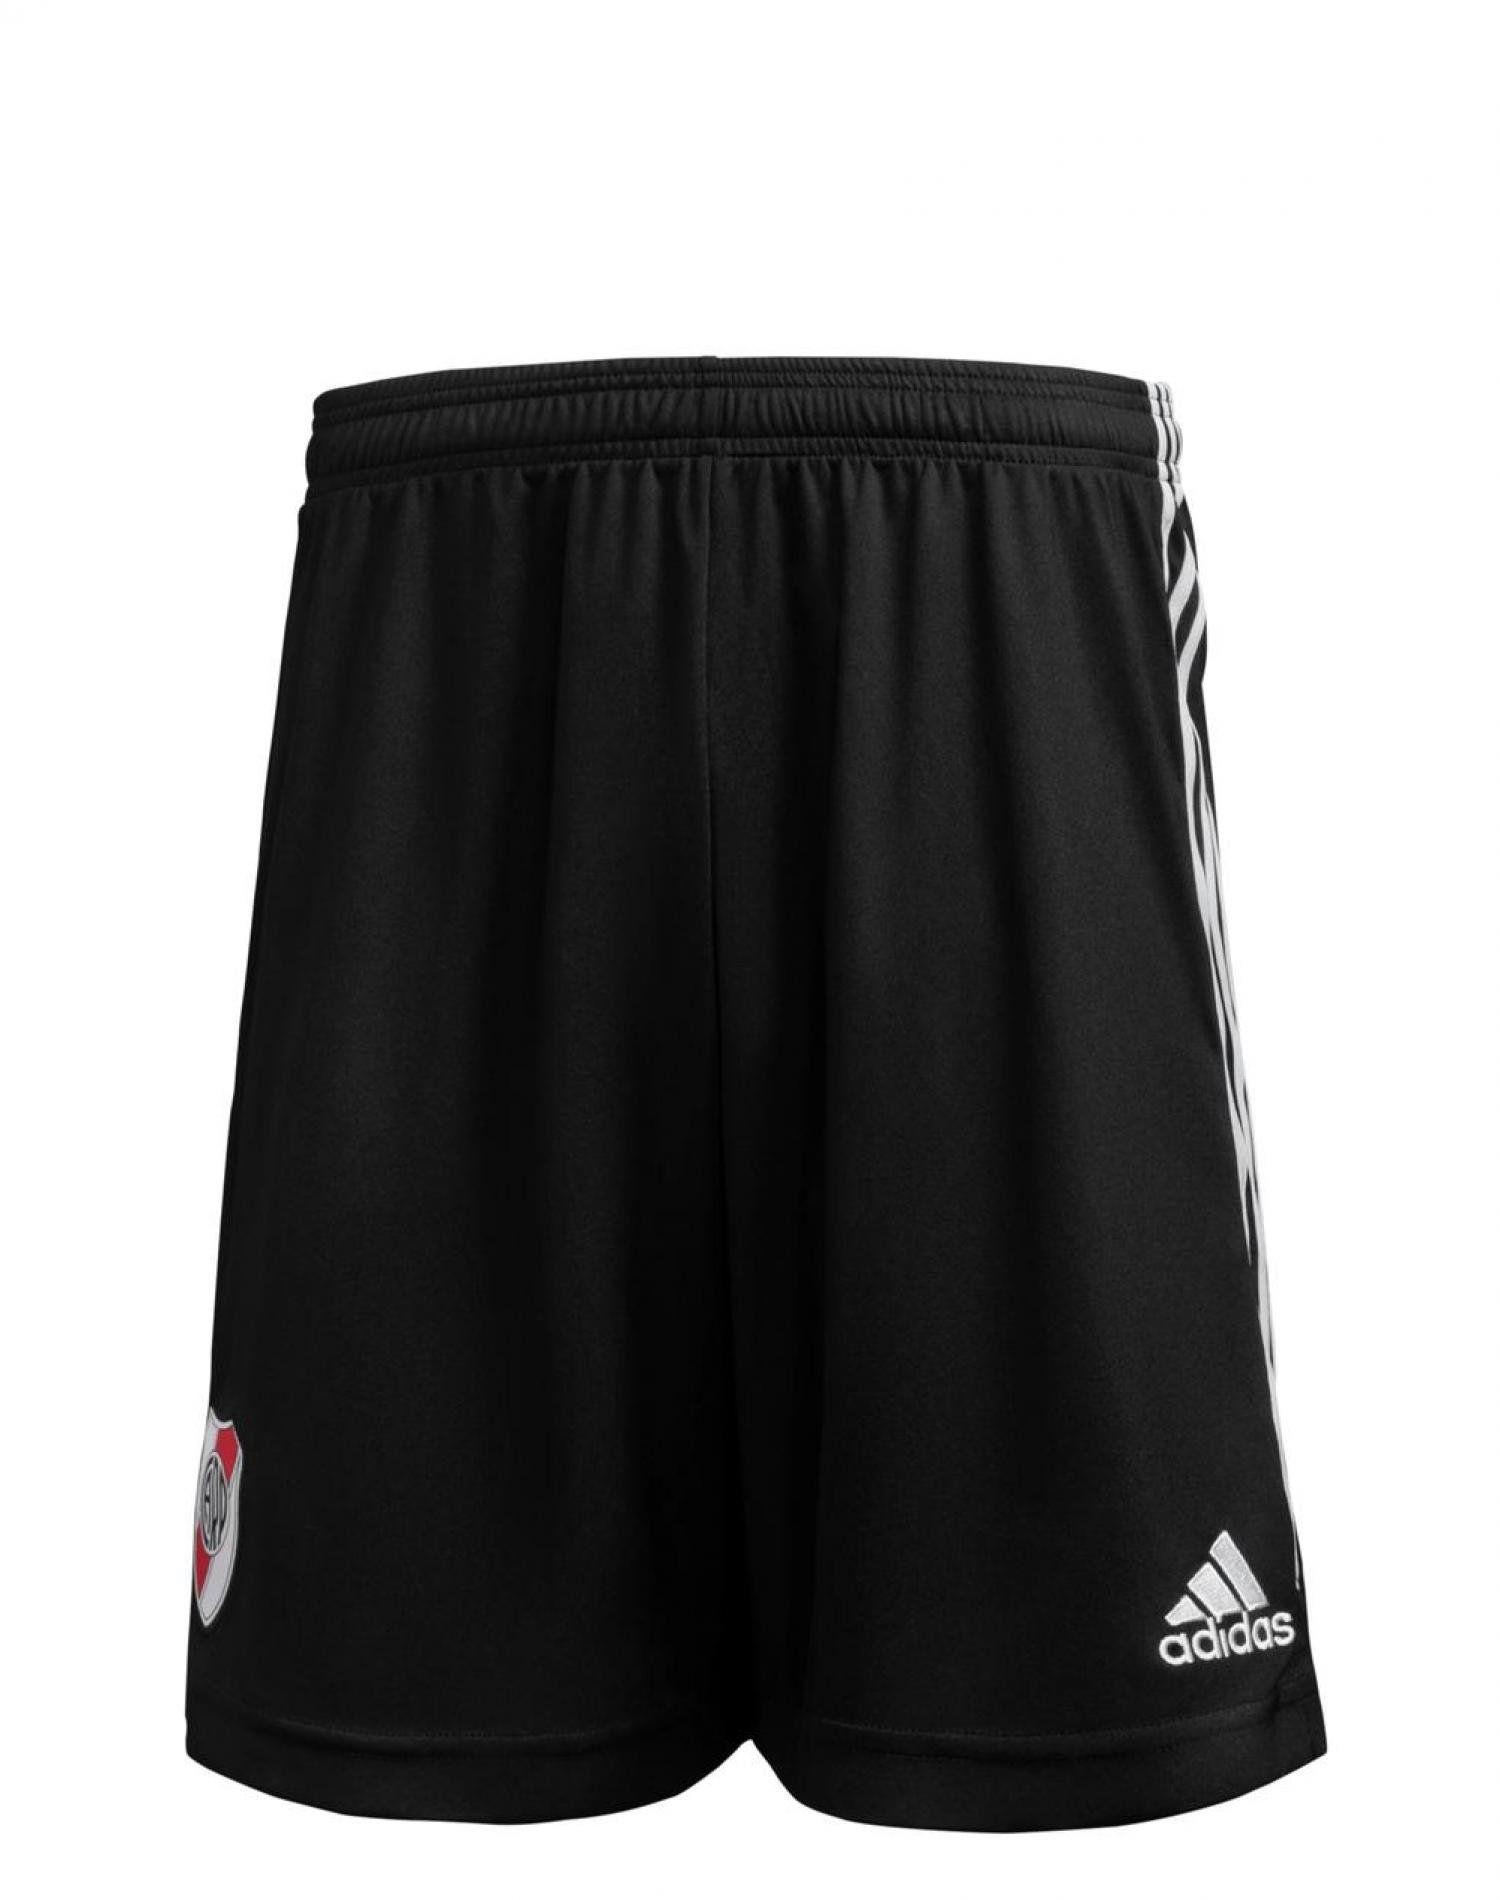 Short Negro Adidas Local River Plate